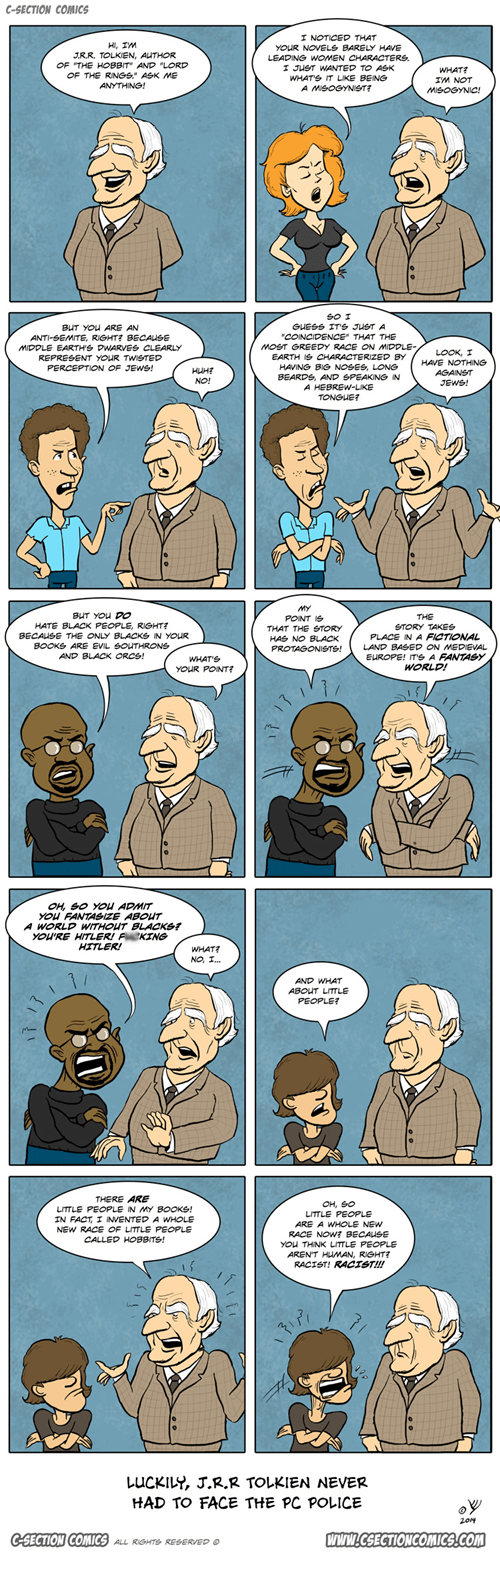 racism Lord of the Rings Misogyny tolkien Sad web comics - 8237940224